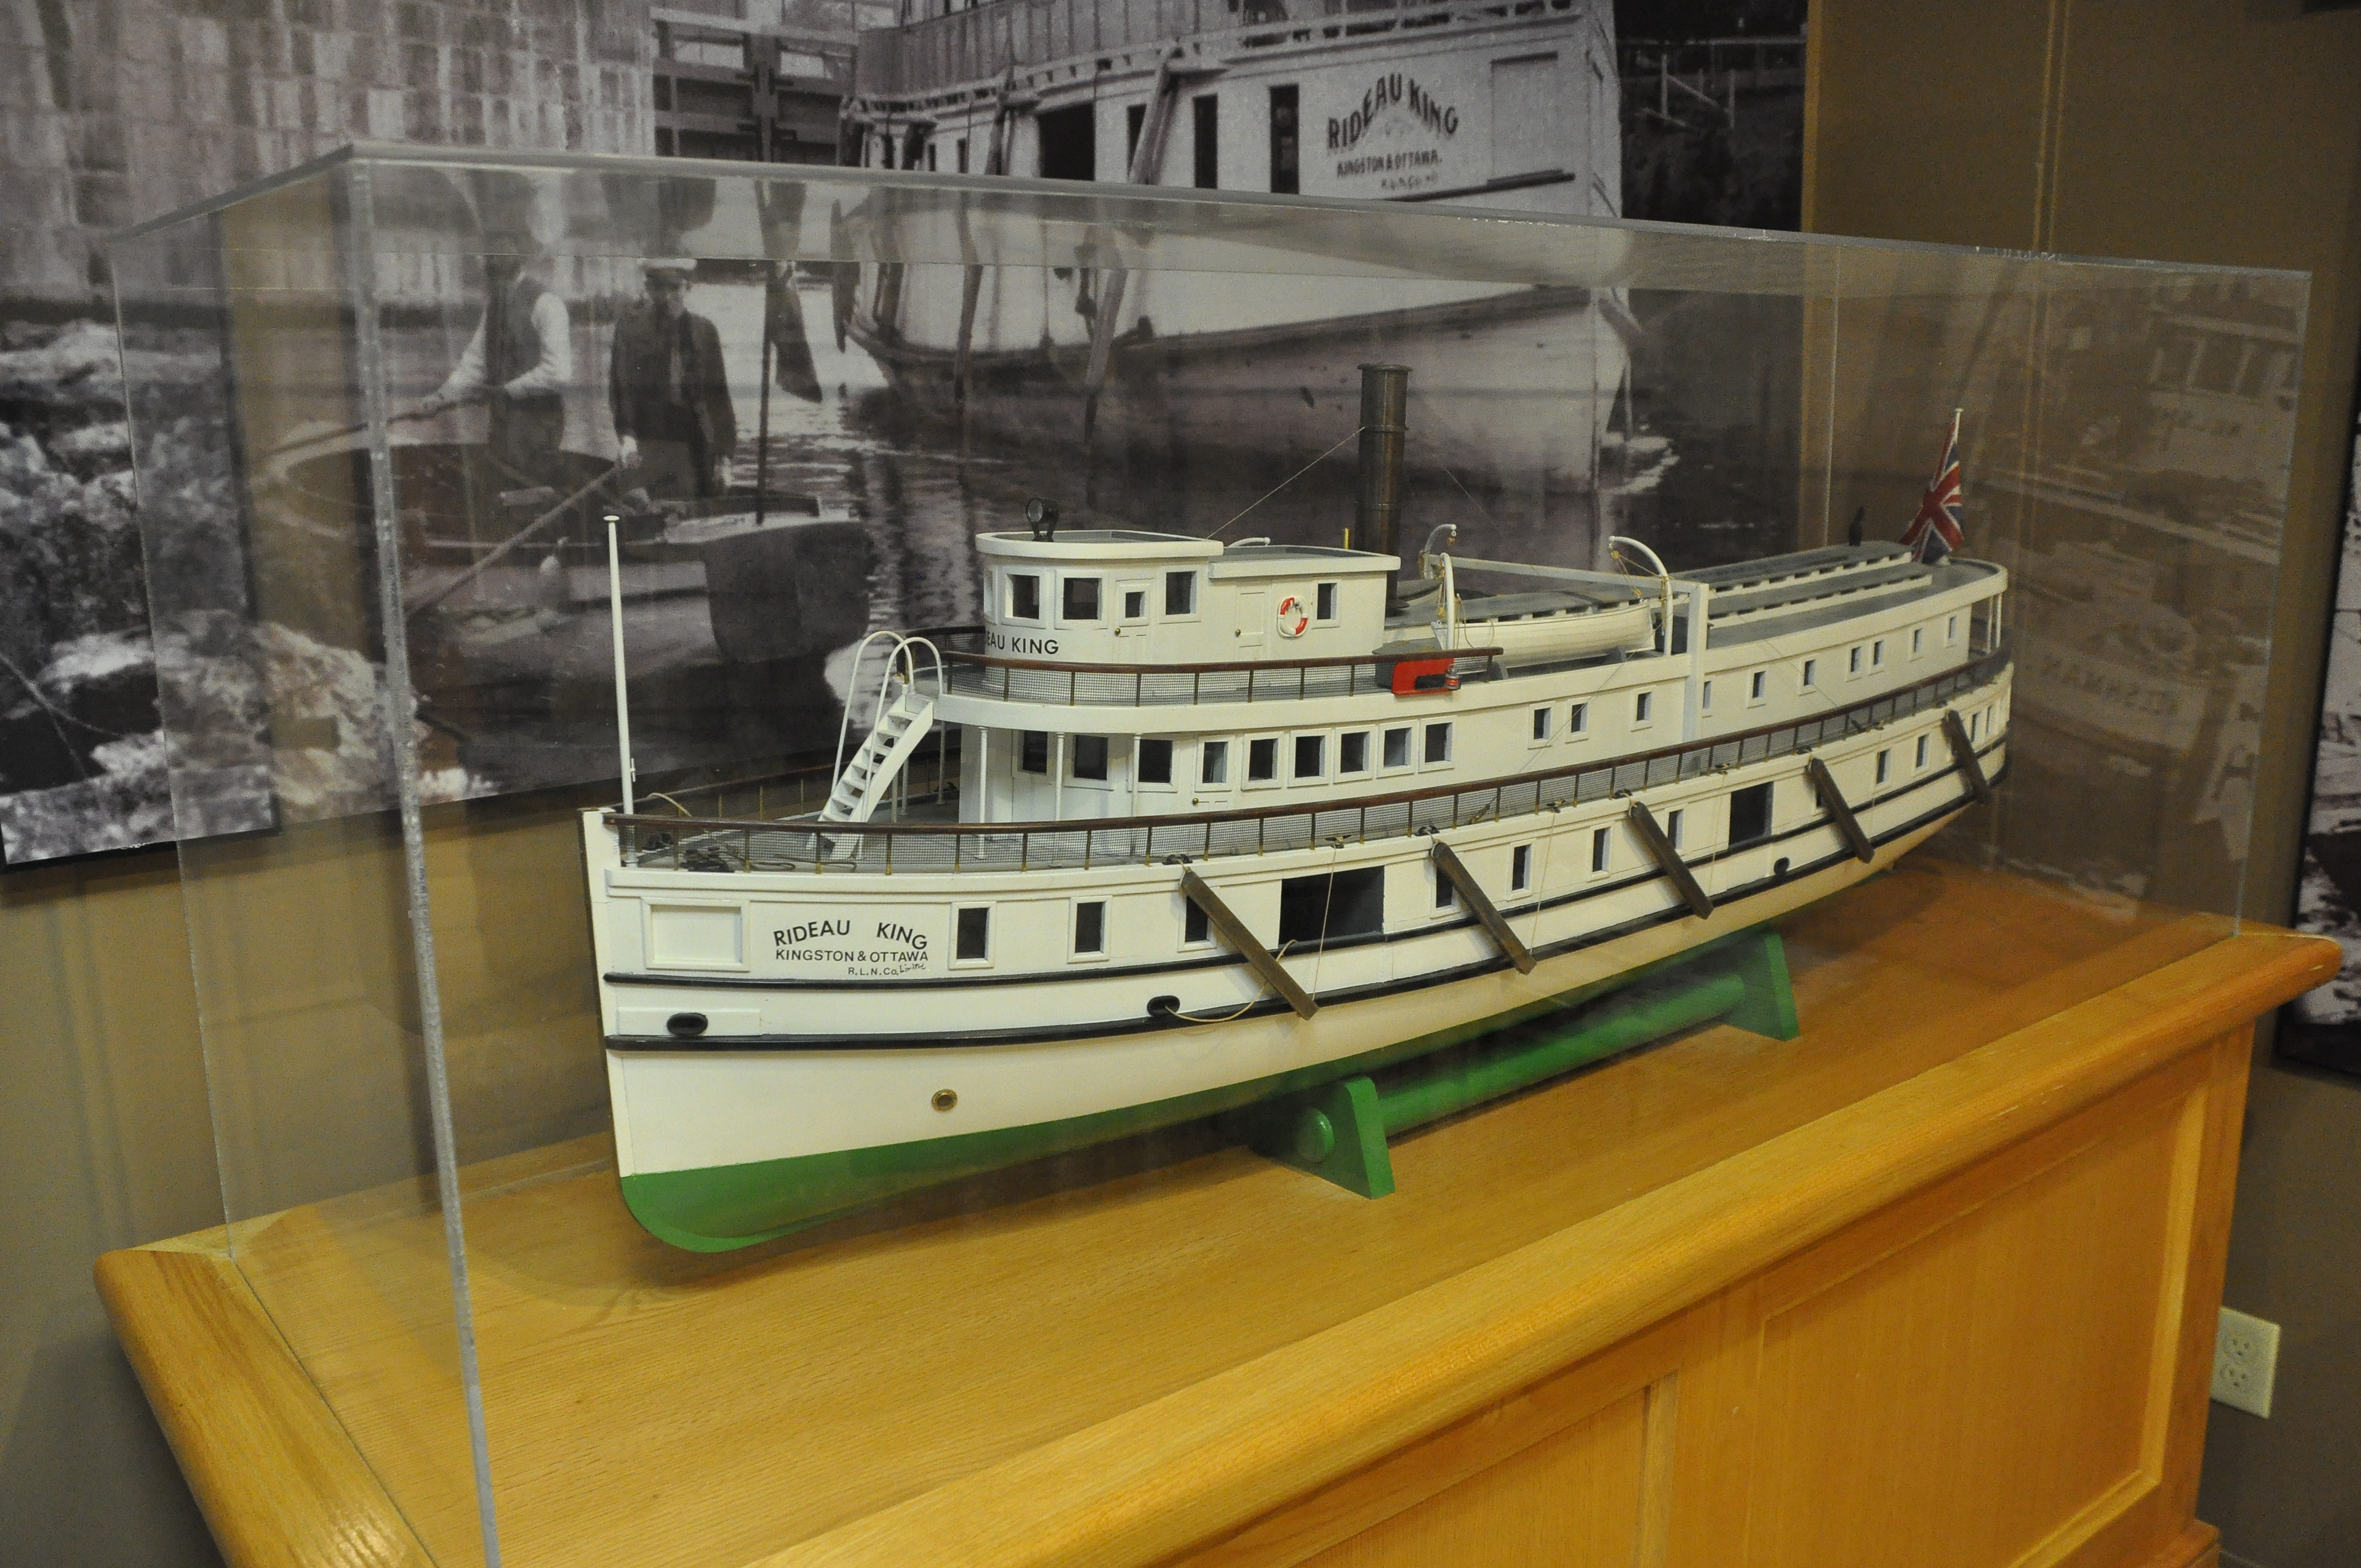 File:Model of the Rideau King ferry boat (26833596546).jpg ...